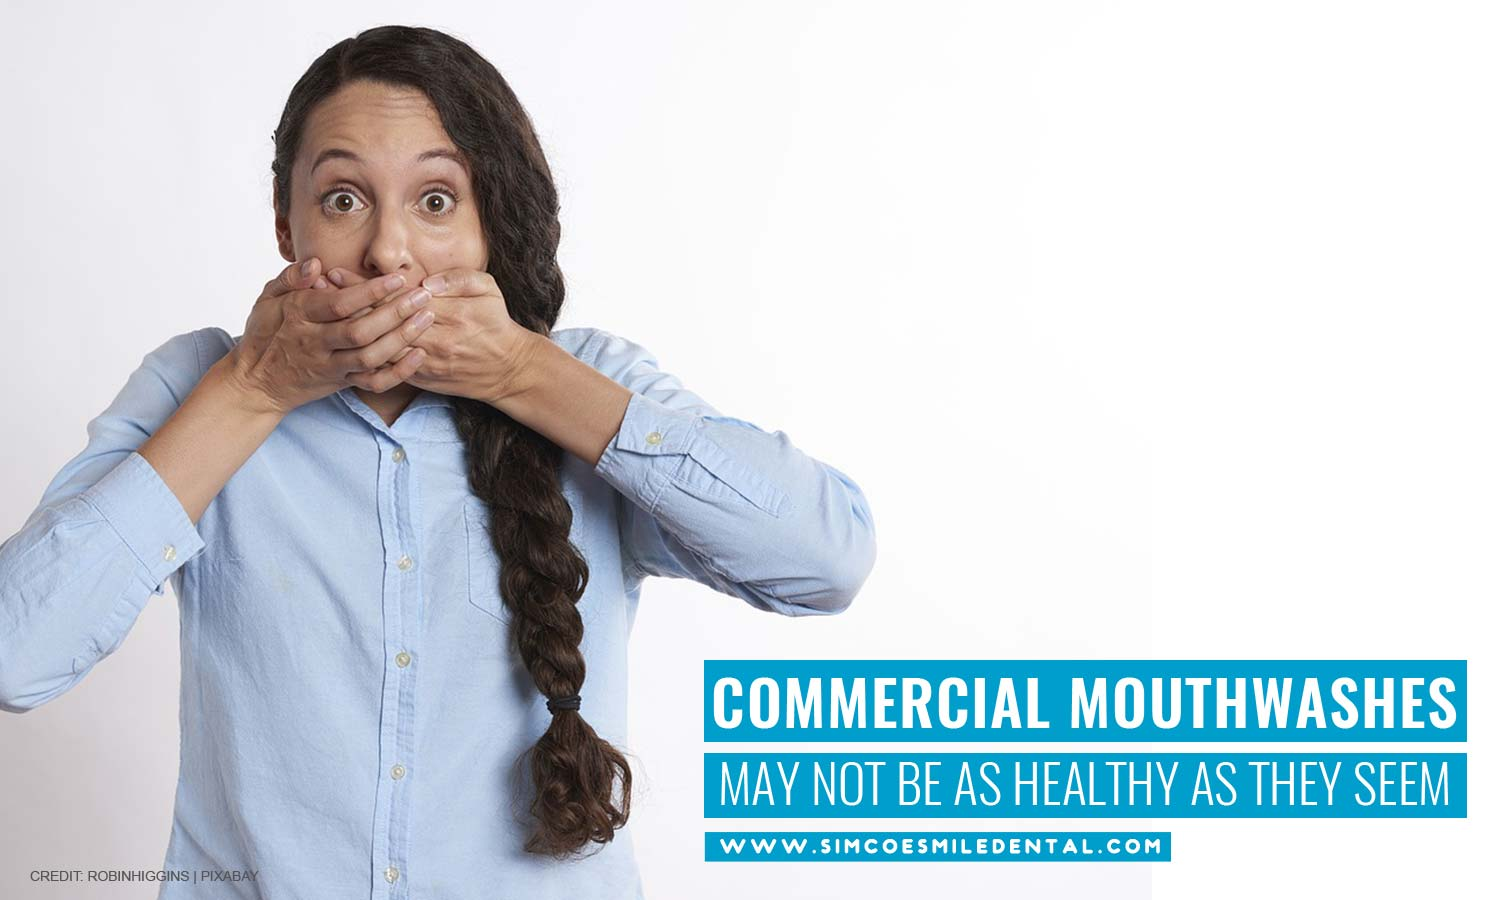 Commercial-mouthwashes-may-not-be-as-healthy-as-they-seem Safe and Natural Mouthwash Alternatives You Should Try